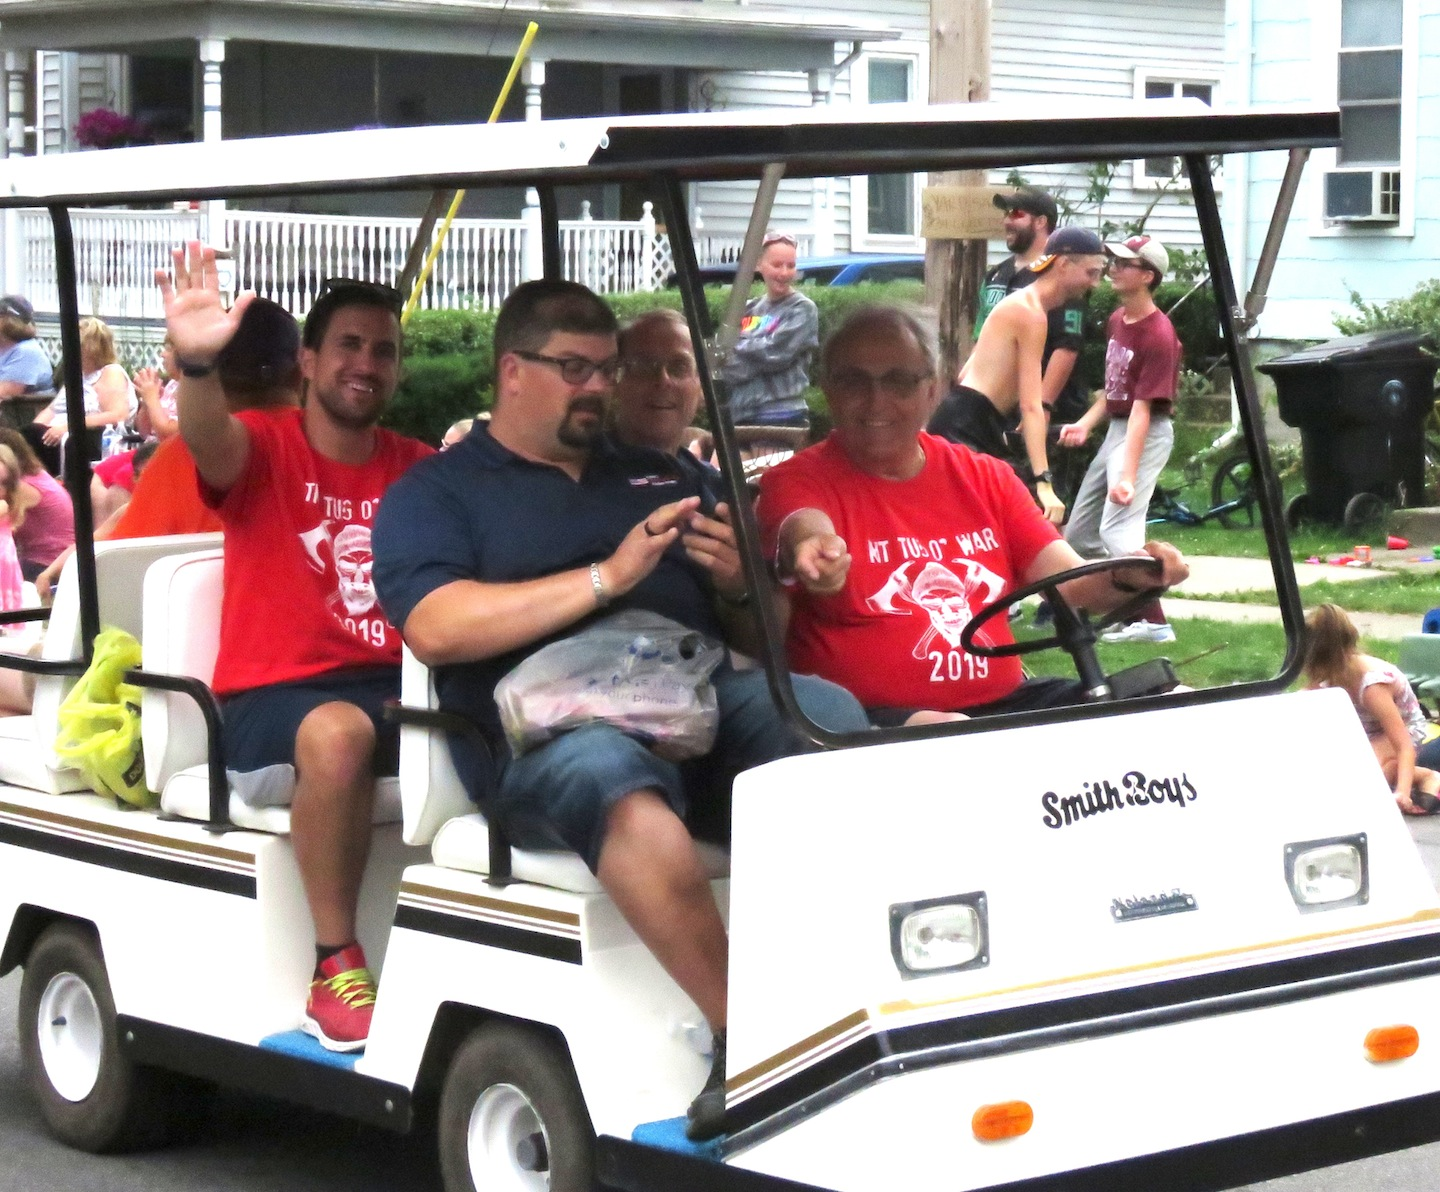 Above, North Tonawanda city officials -- Mayor Arthur Pappas (driving), Common Council President Eric Zadzilka (passenger seat), Alderman Mark Berube (back seat, at right) and Administrative Assistant Dan DiVirgilio (back seat, at left) -- stroll through the Canal Fest Parade in a golf cart. Pappas and NT officials were happy campers, as the North Tonawanda side won the tug-of-war battle, earlier in the day.